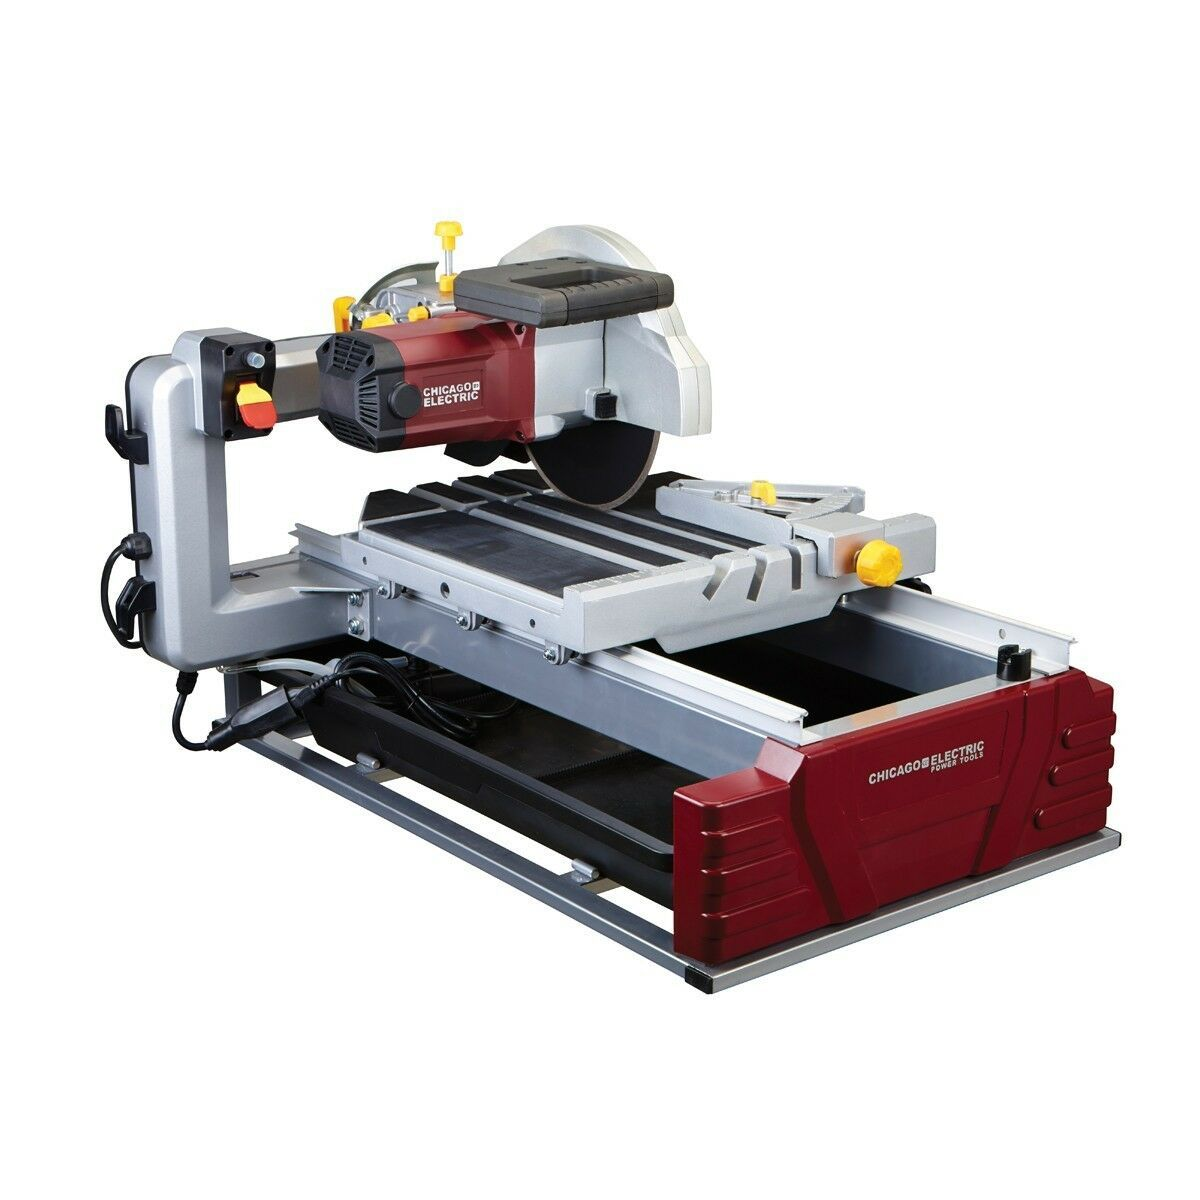 """2 1/2 Horsepower 10"""" Industrial Tile And Brick Saw 2.5 HP - $327.24"""